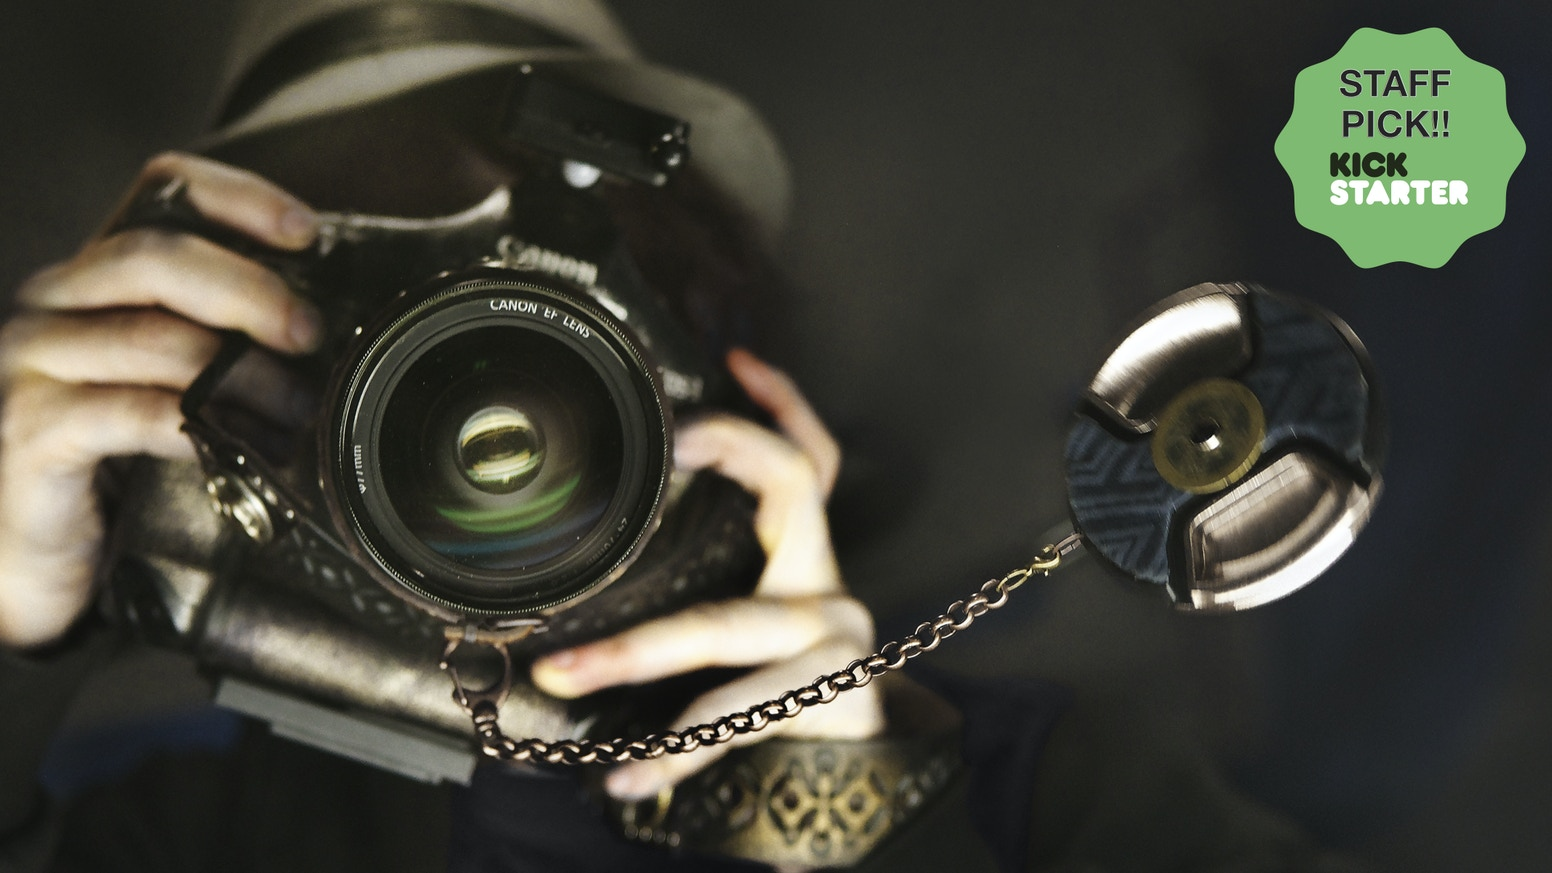 Transform your camera into an eccentric piece of art that truly represents YOU! Decorative Lens caps, Leather Cuffs & Camera Straps =)